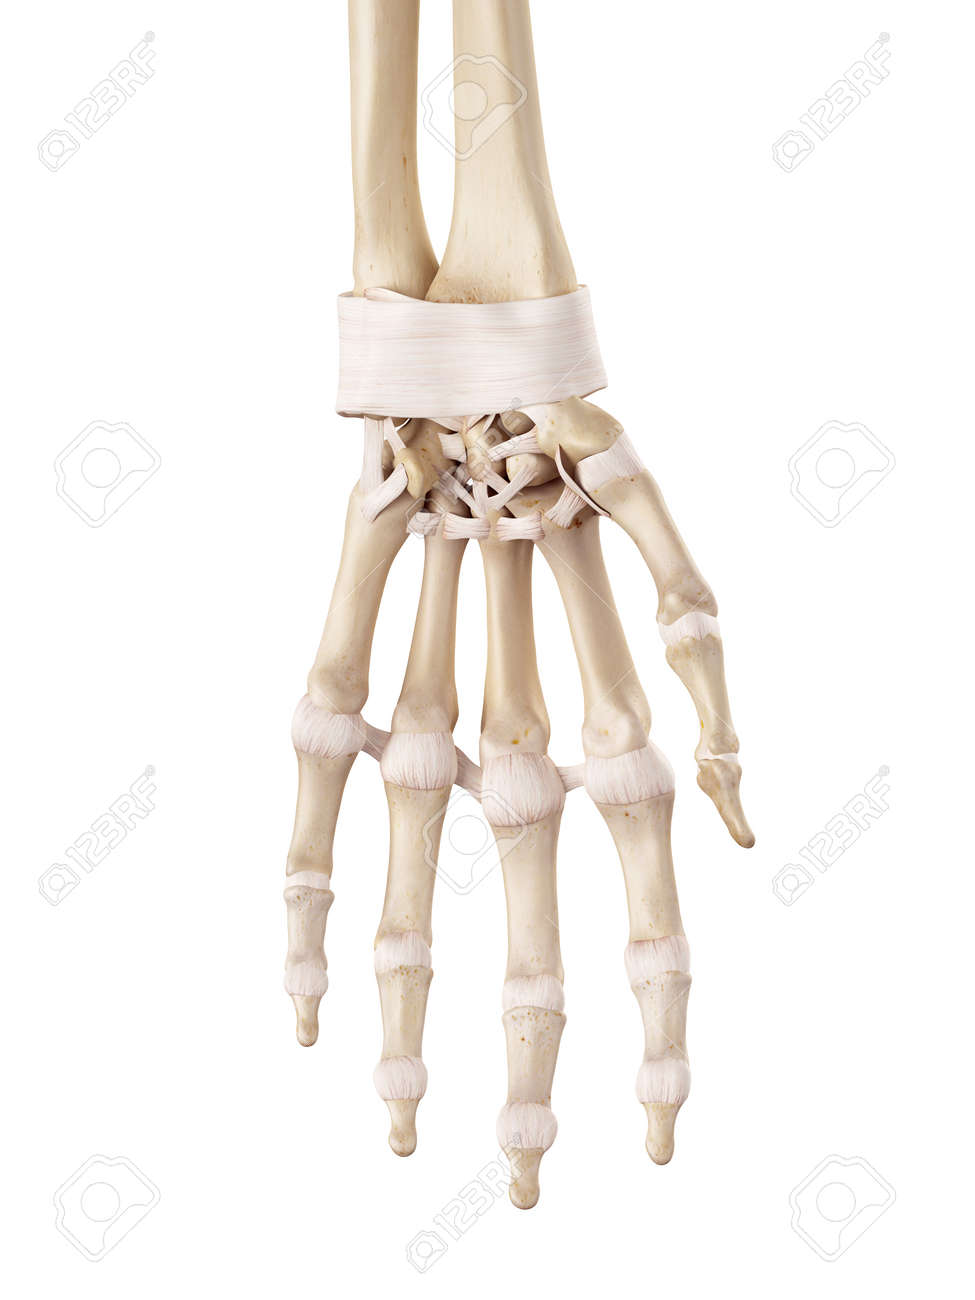 Medical Accurate Illustration Of The Hand Ligaments Stock Photo ...